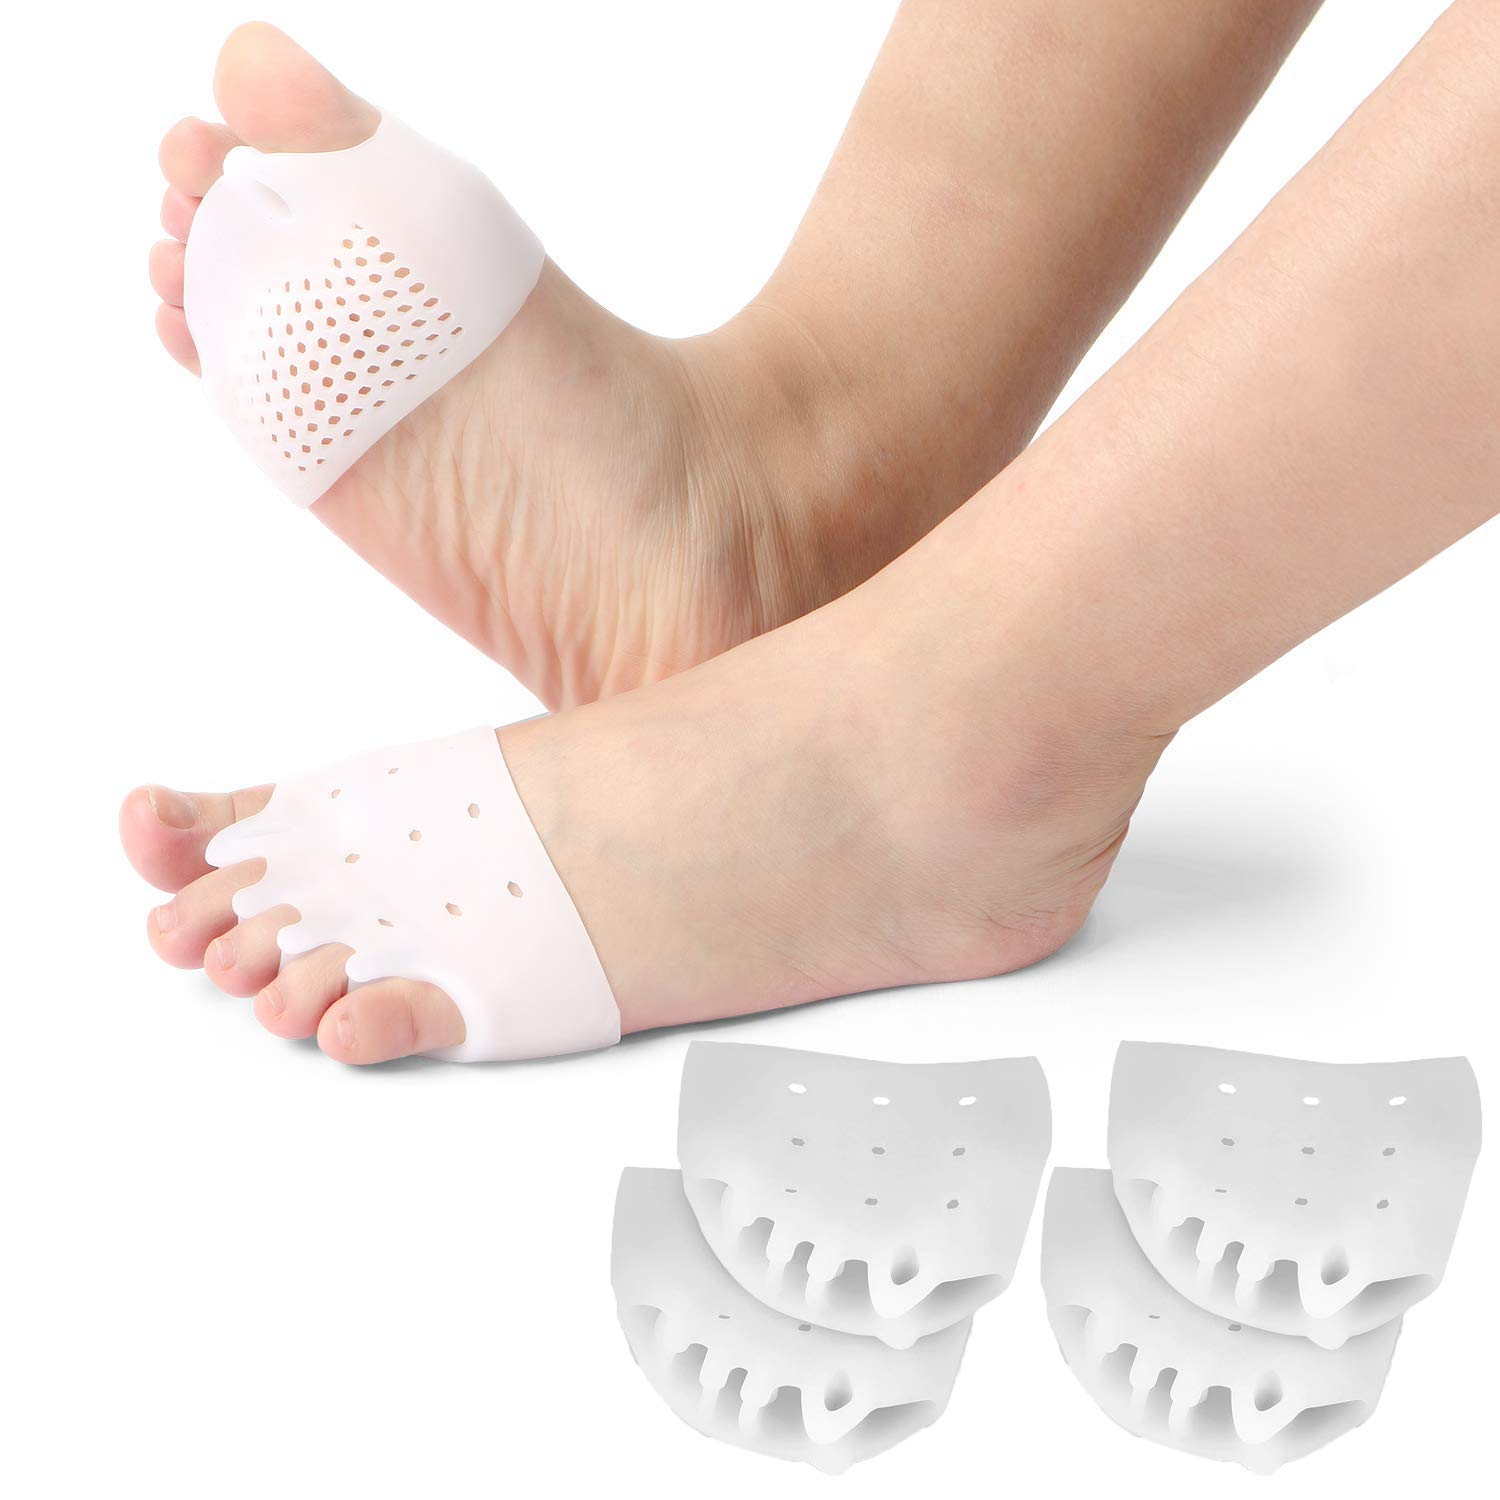 2 Pairs Gel Toe Separators Metatarsal Pads, Gel Toe Straightener for Overlapping Toes, Bunion Corrector, Hallux Valgus Forefoot Pain Relief.